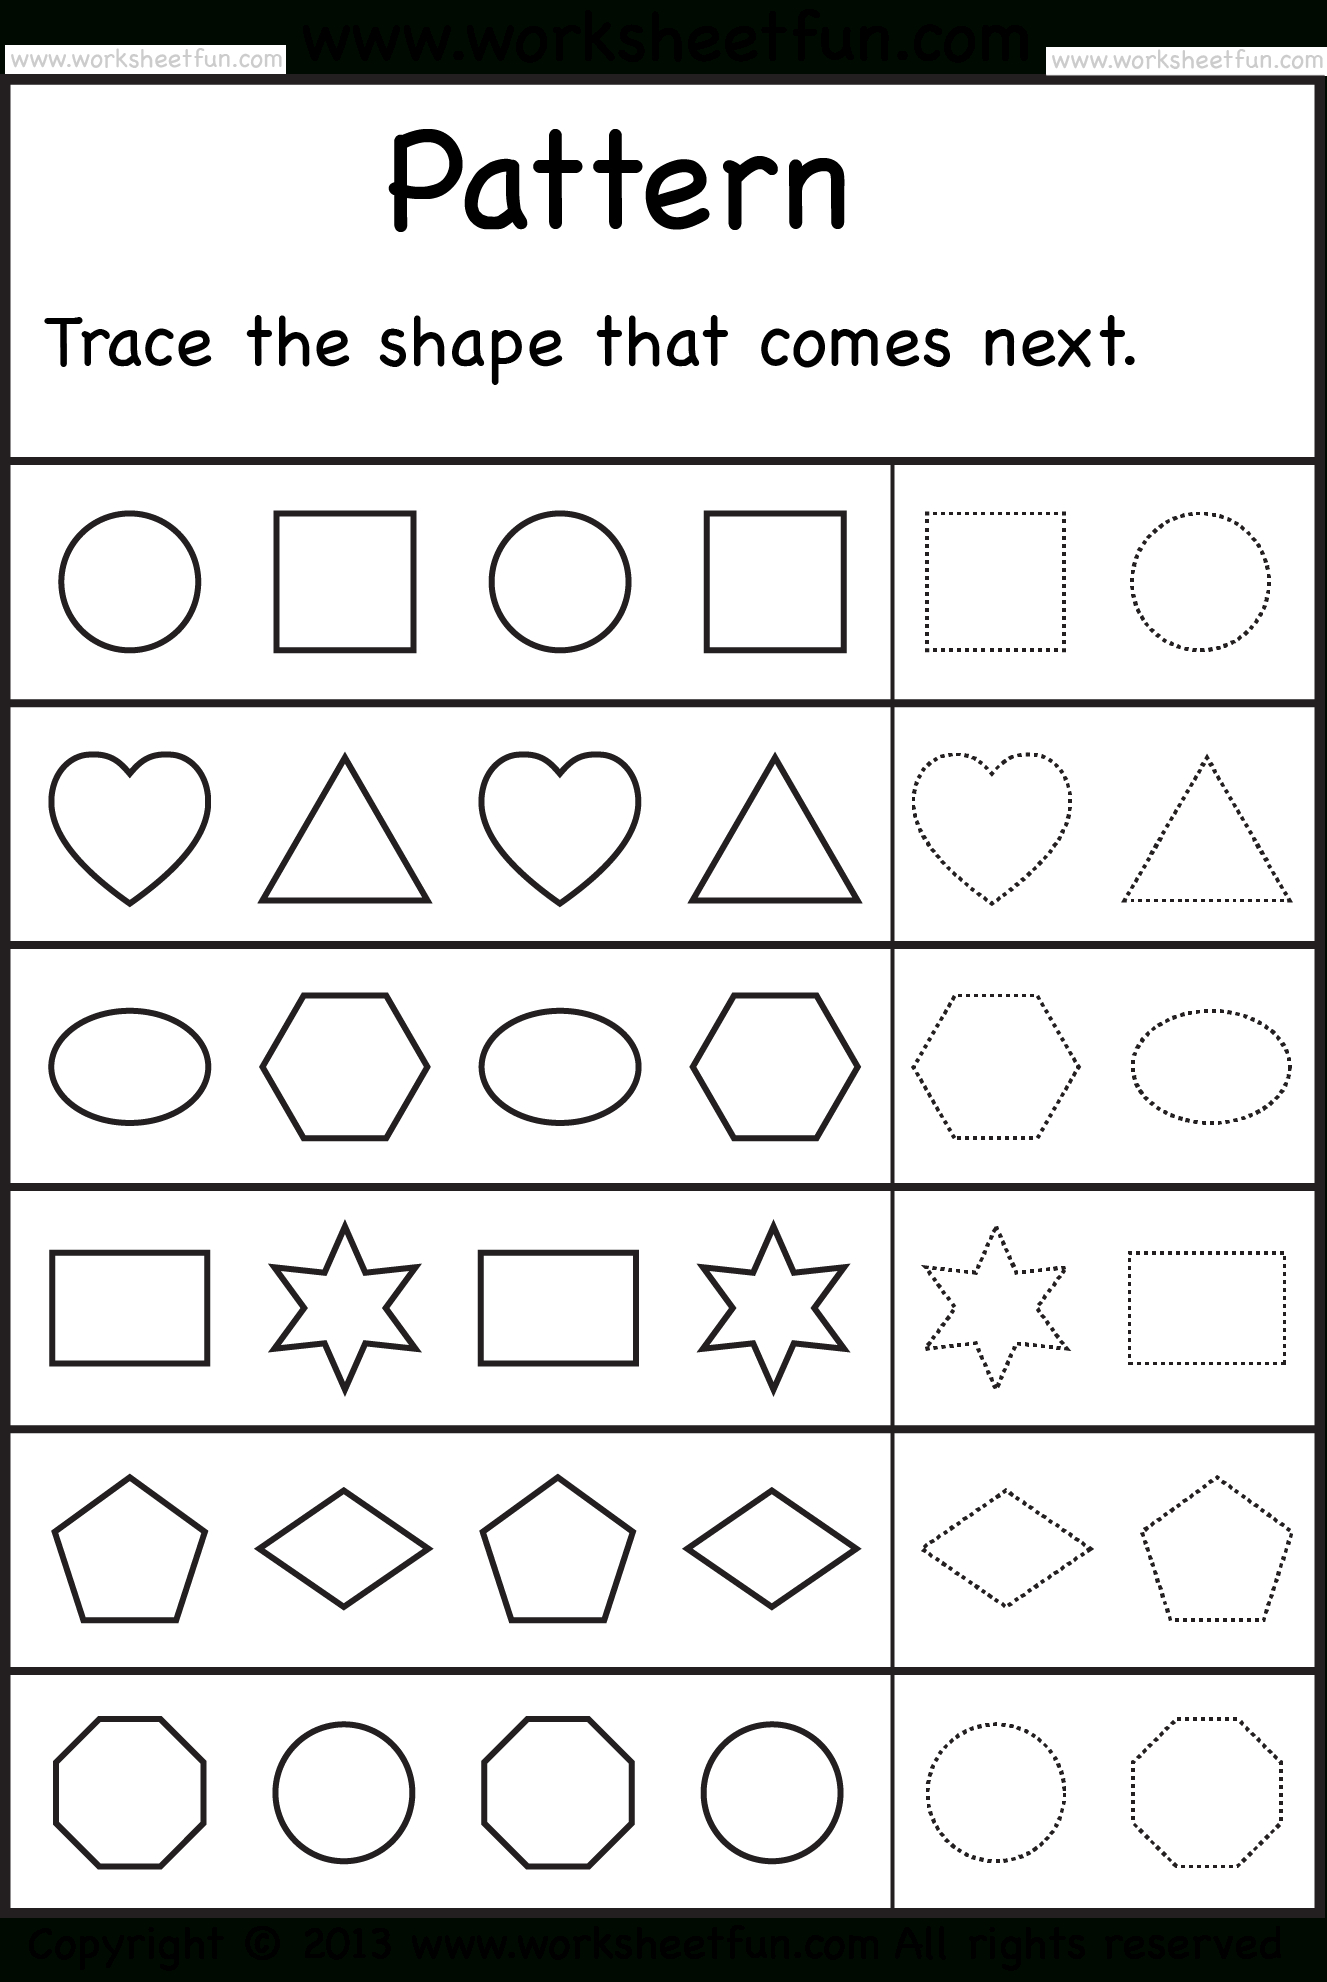 Free Printable Preschool Worksheets | Arts And Crafts | Kindergarten - Free Printable Preschool Worksheets